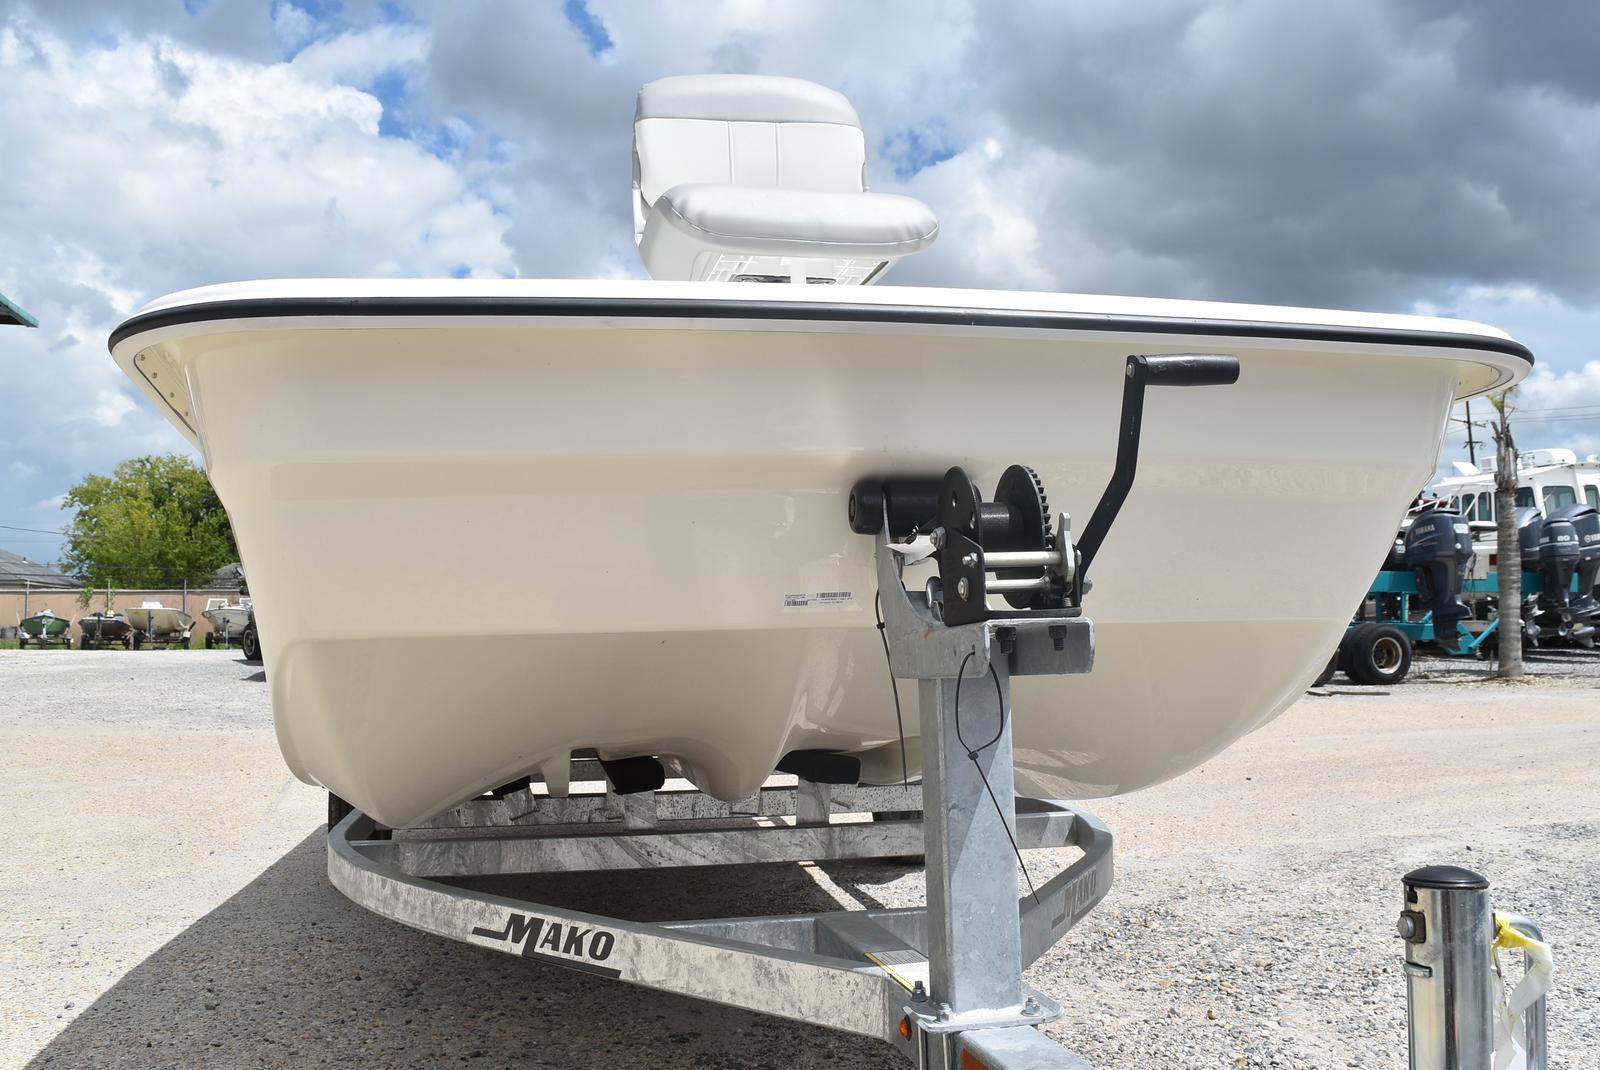 2020 Mako boat for sale, model of the boat is Pro Skiff 17, 75 ELPT & Image # 381 of 702